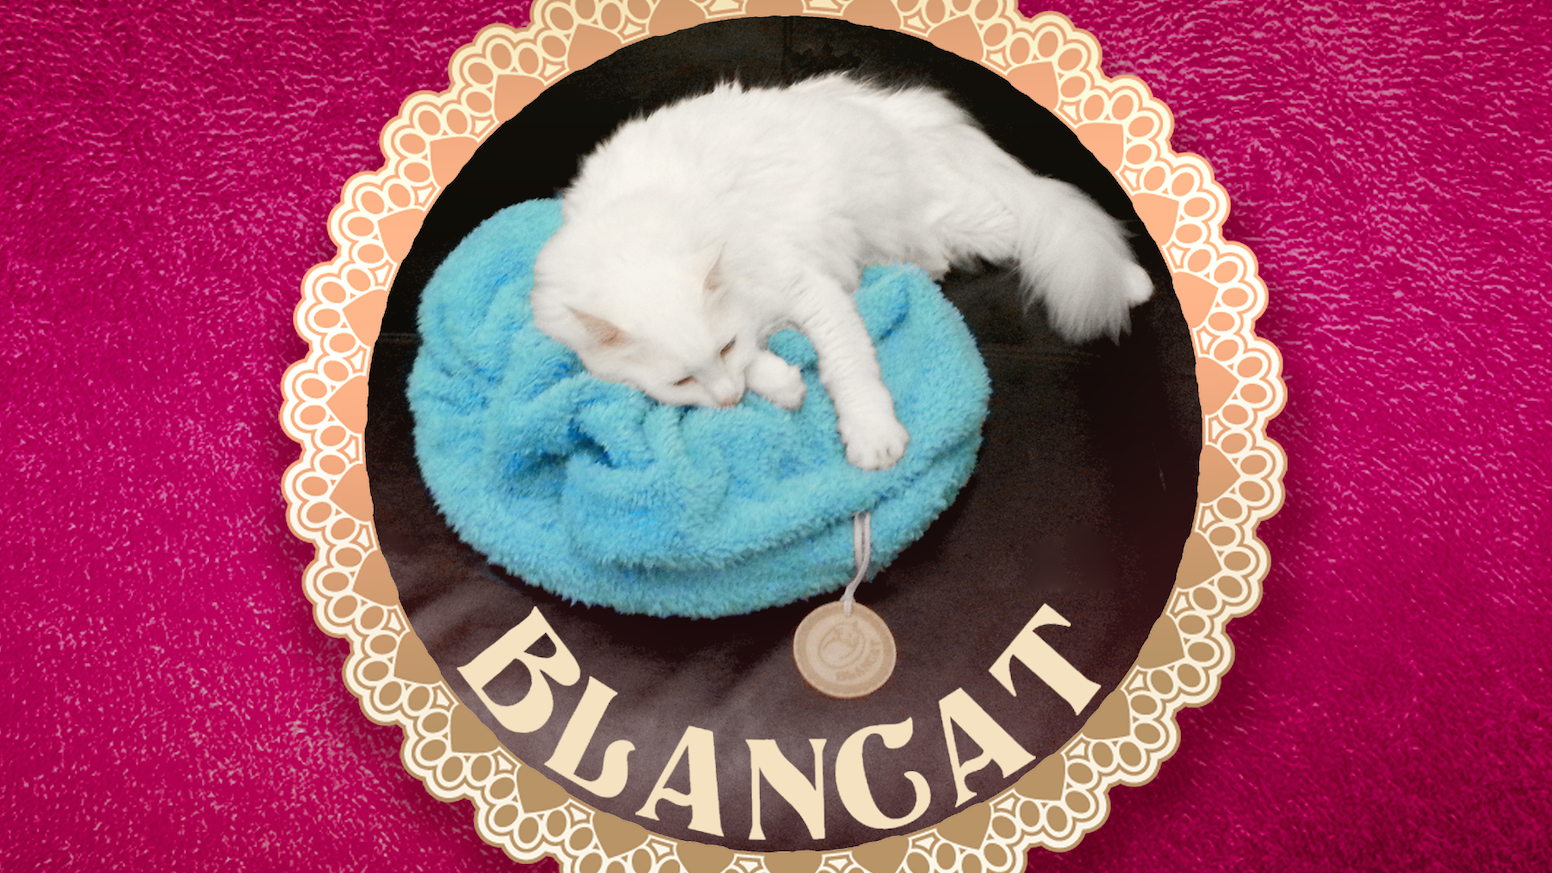 A unique soft and relaxing blanket for your cat. Blanket encourages your cat's natural padding reflex by mimicking her mother's tummy.